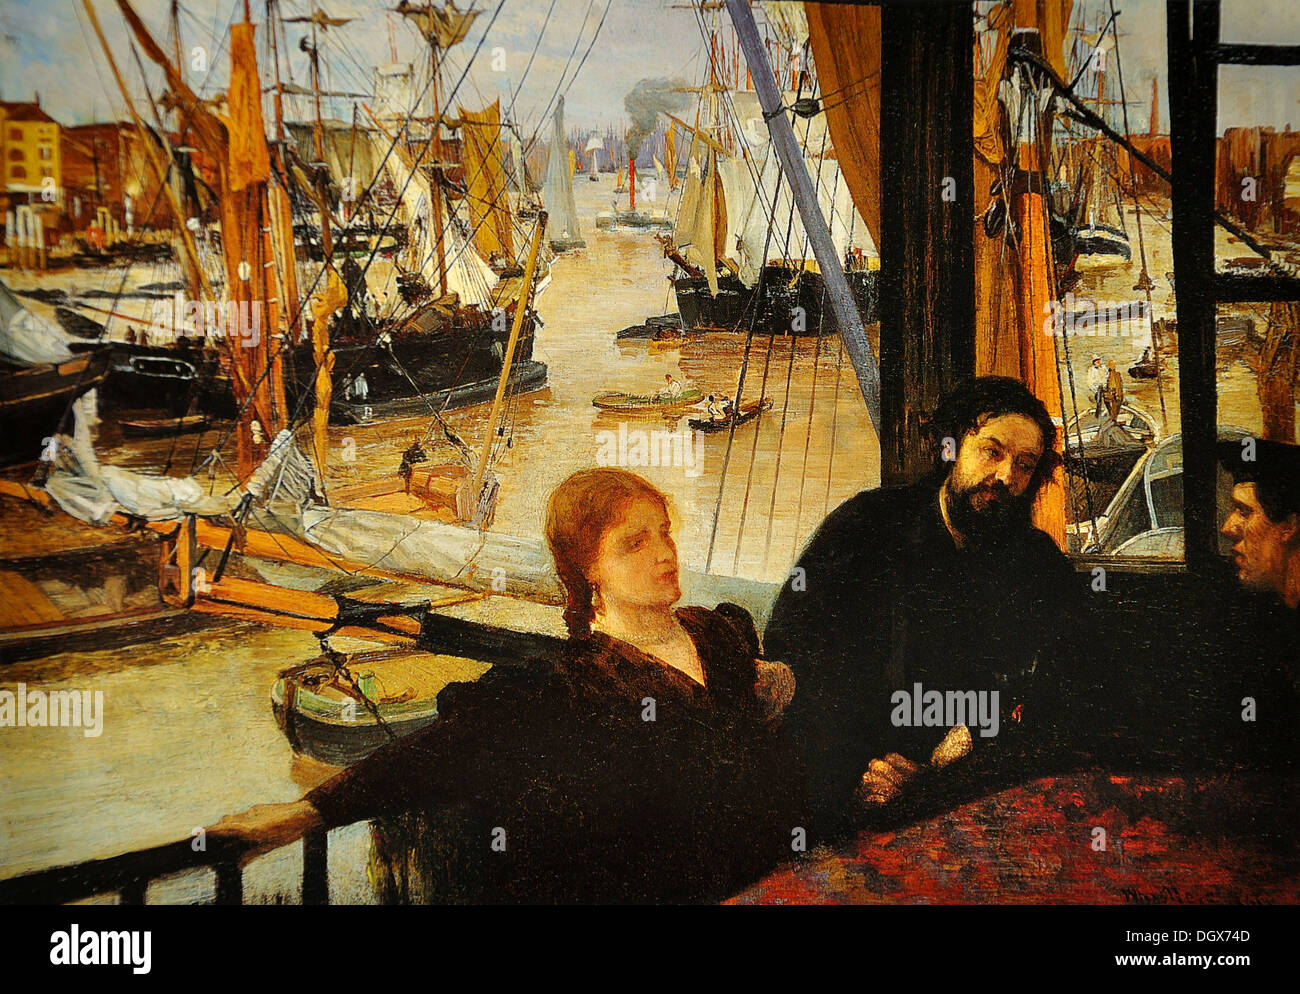 Wapping on Thames - by James McNeill Whistler, 1864 - Stock Image